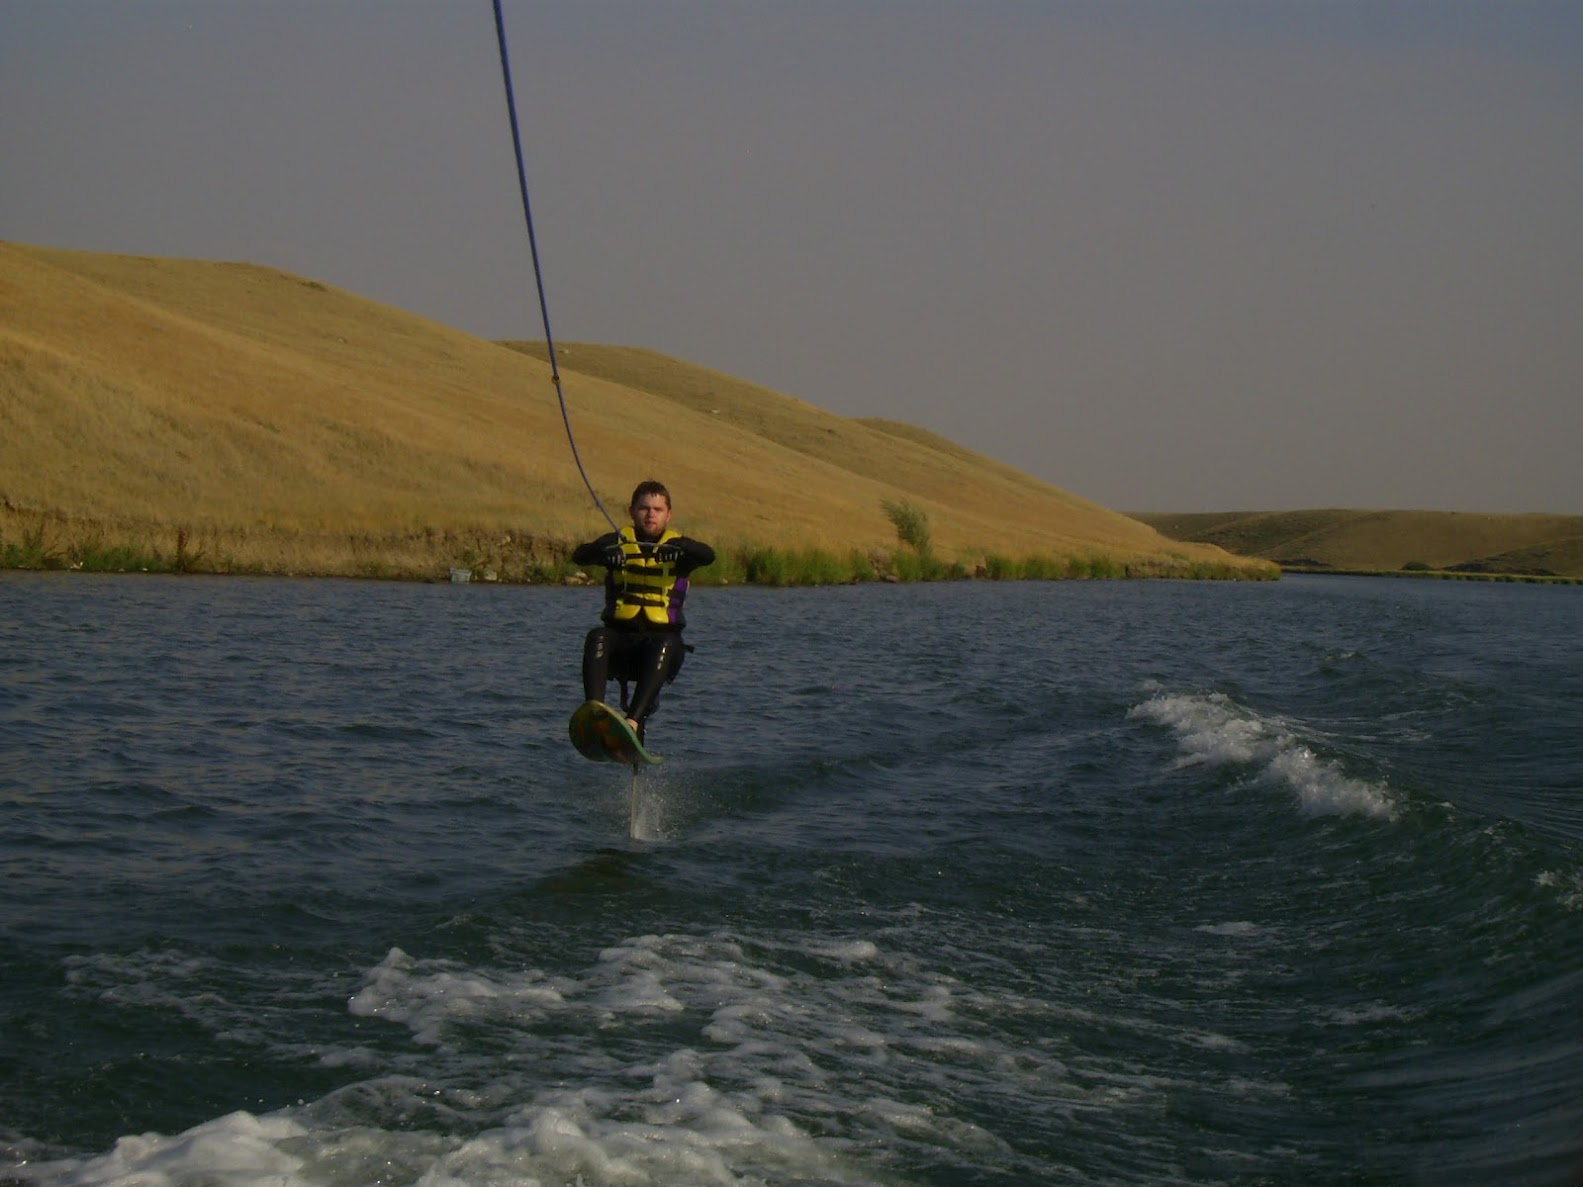 Kevin on the air chair at Stafford Lake